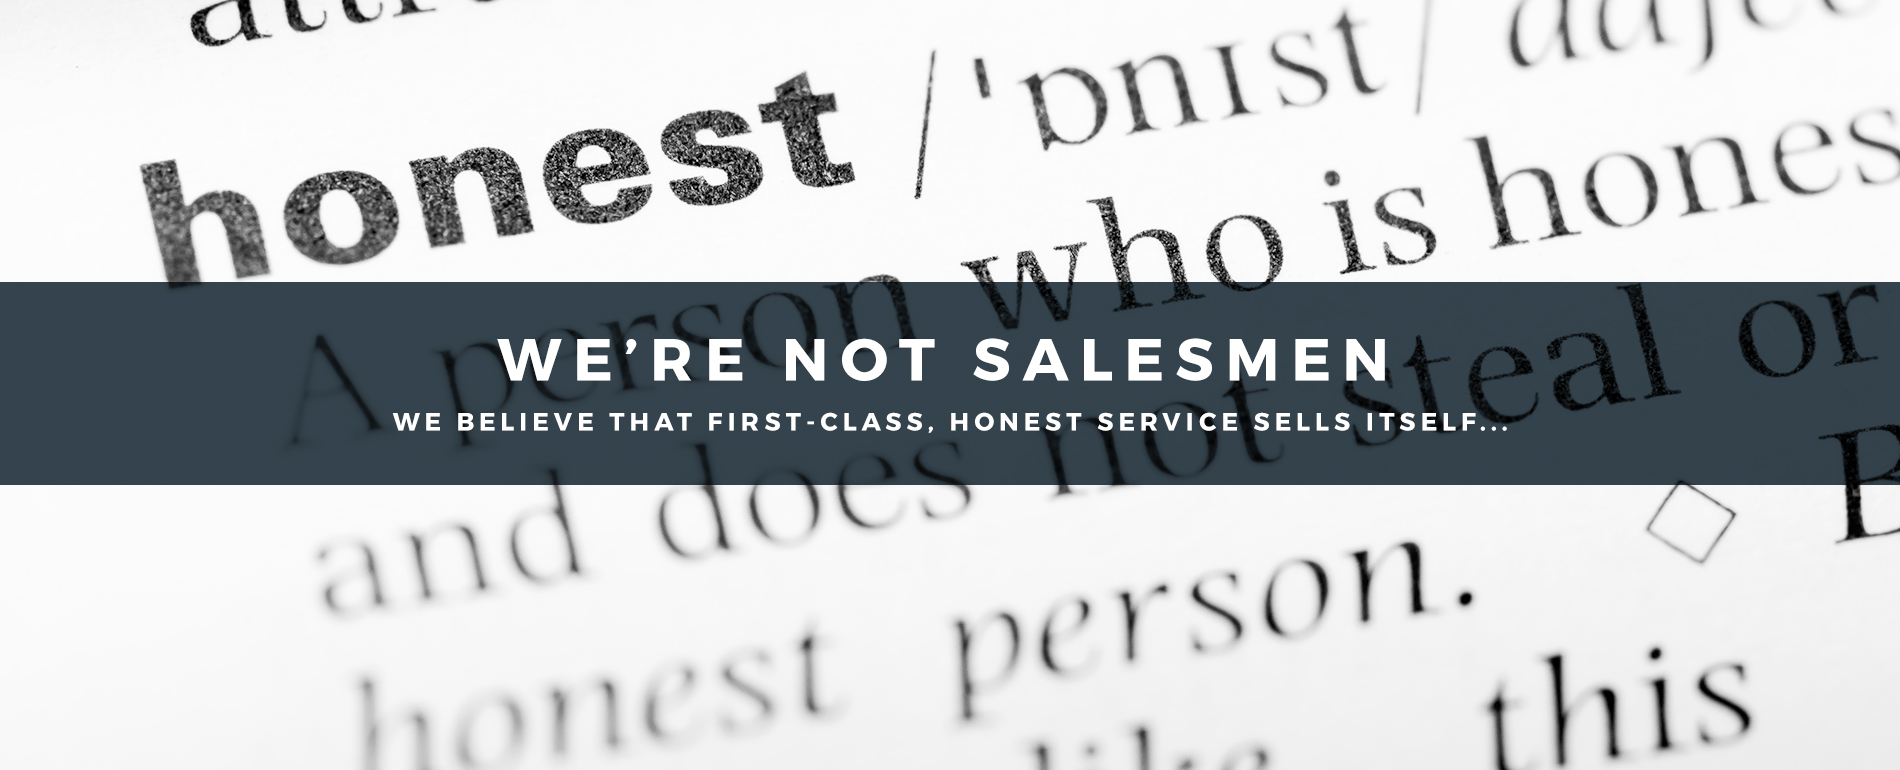 We're Not Salesmen